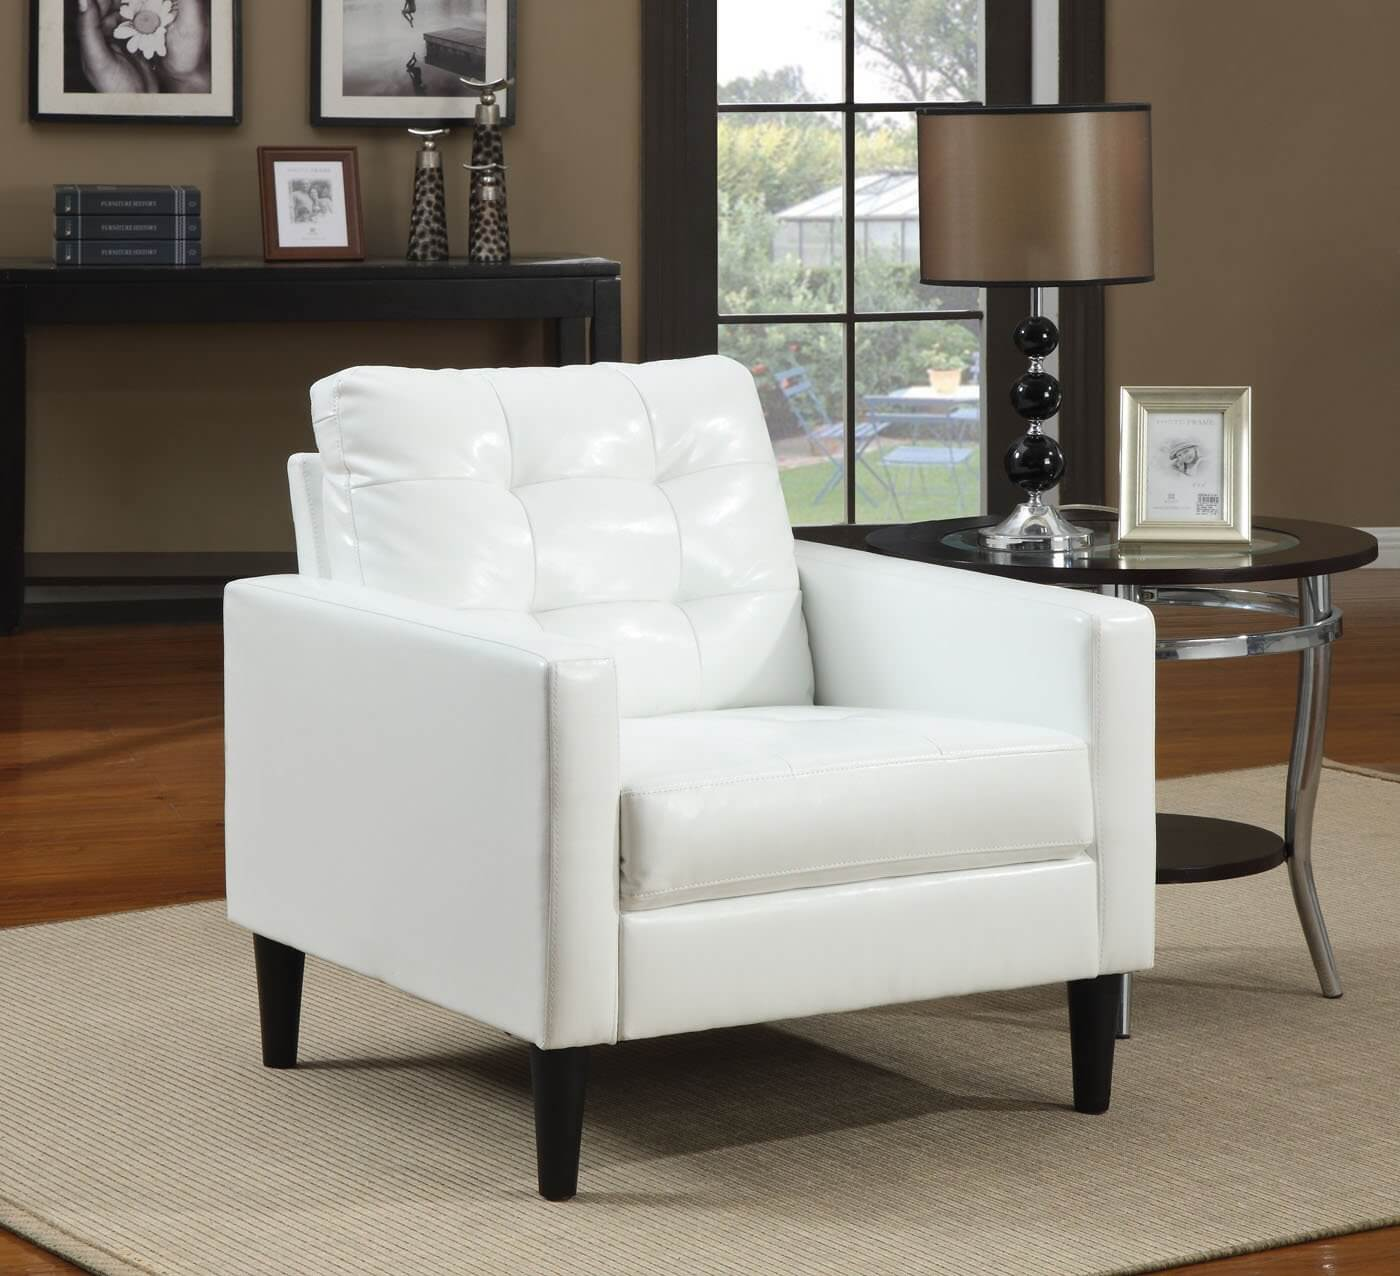 Sitting Room Chairs 37 White Modern Accent Chairs For The Living Room